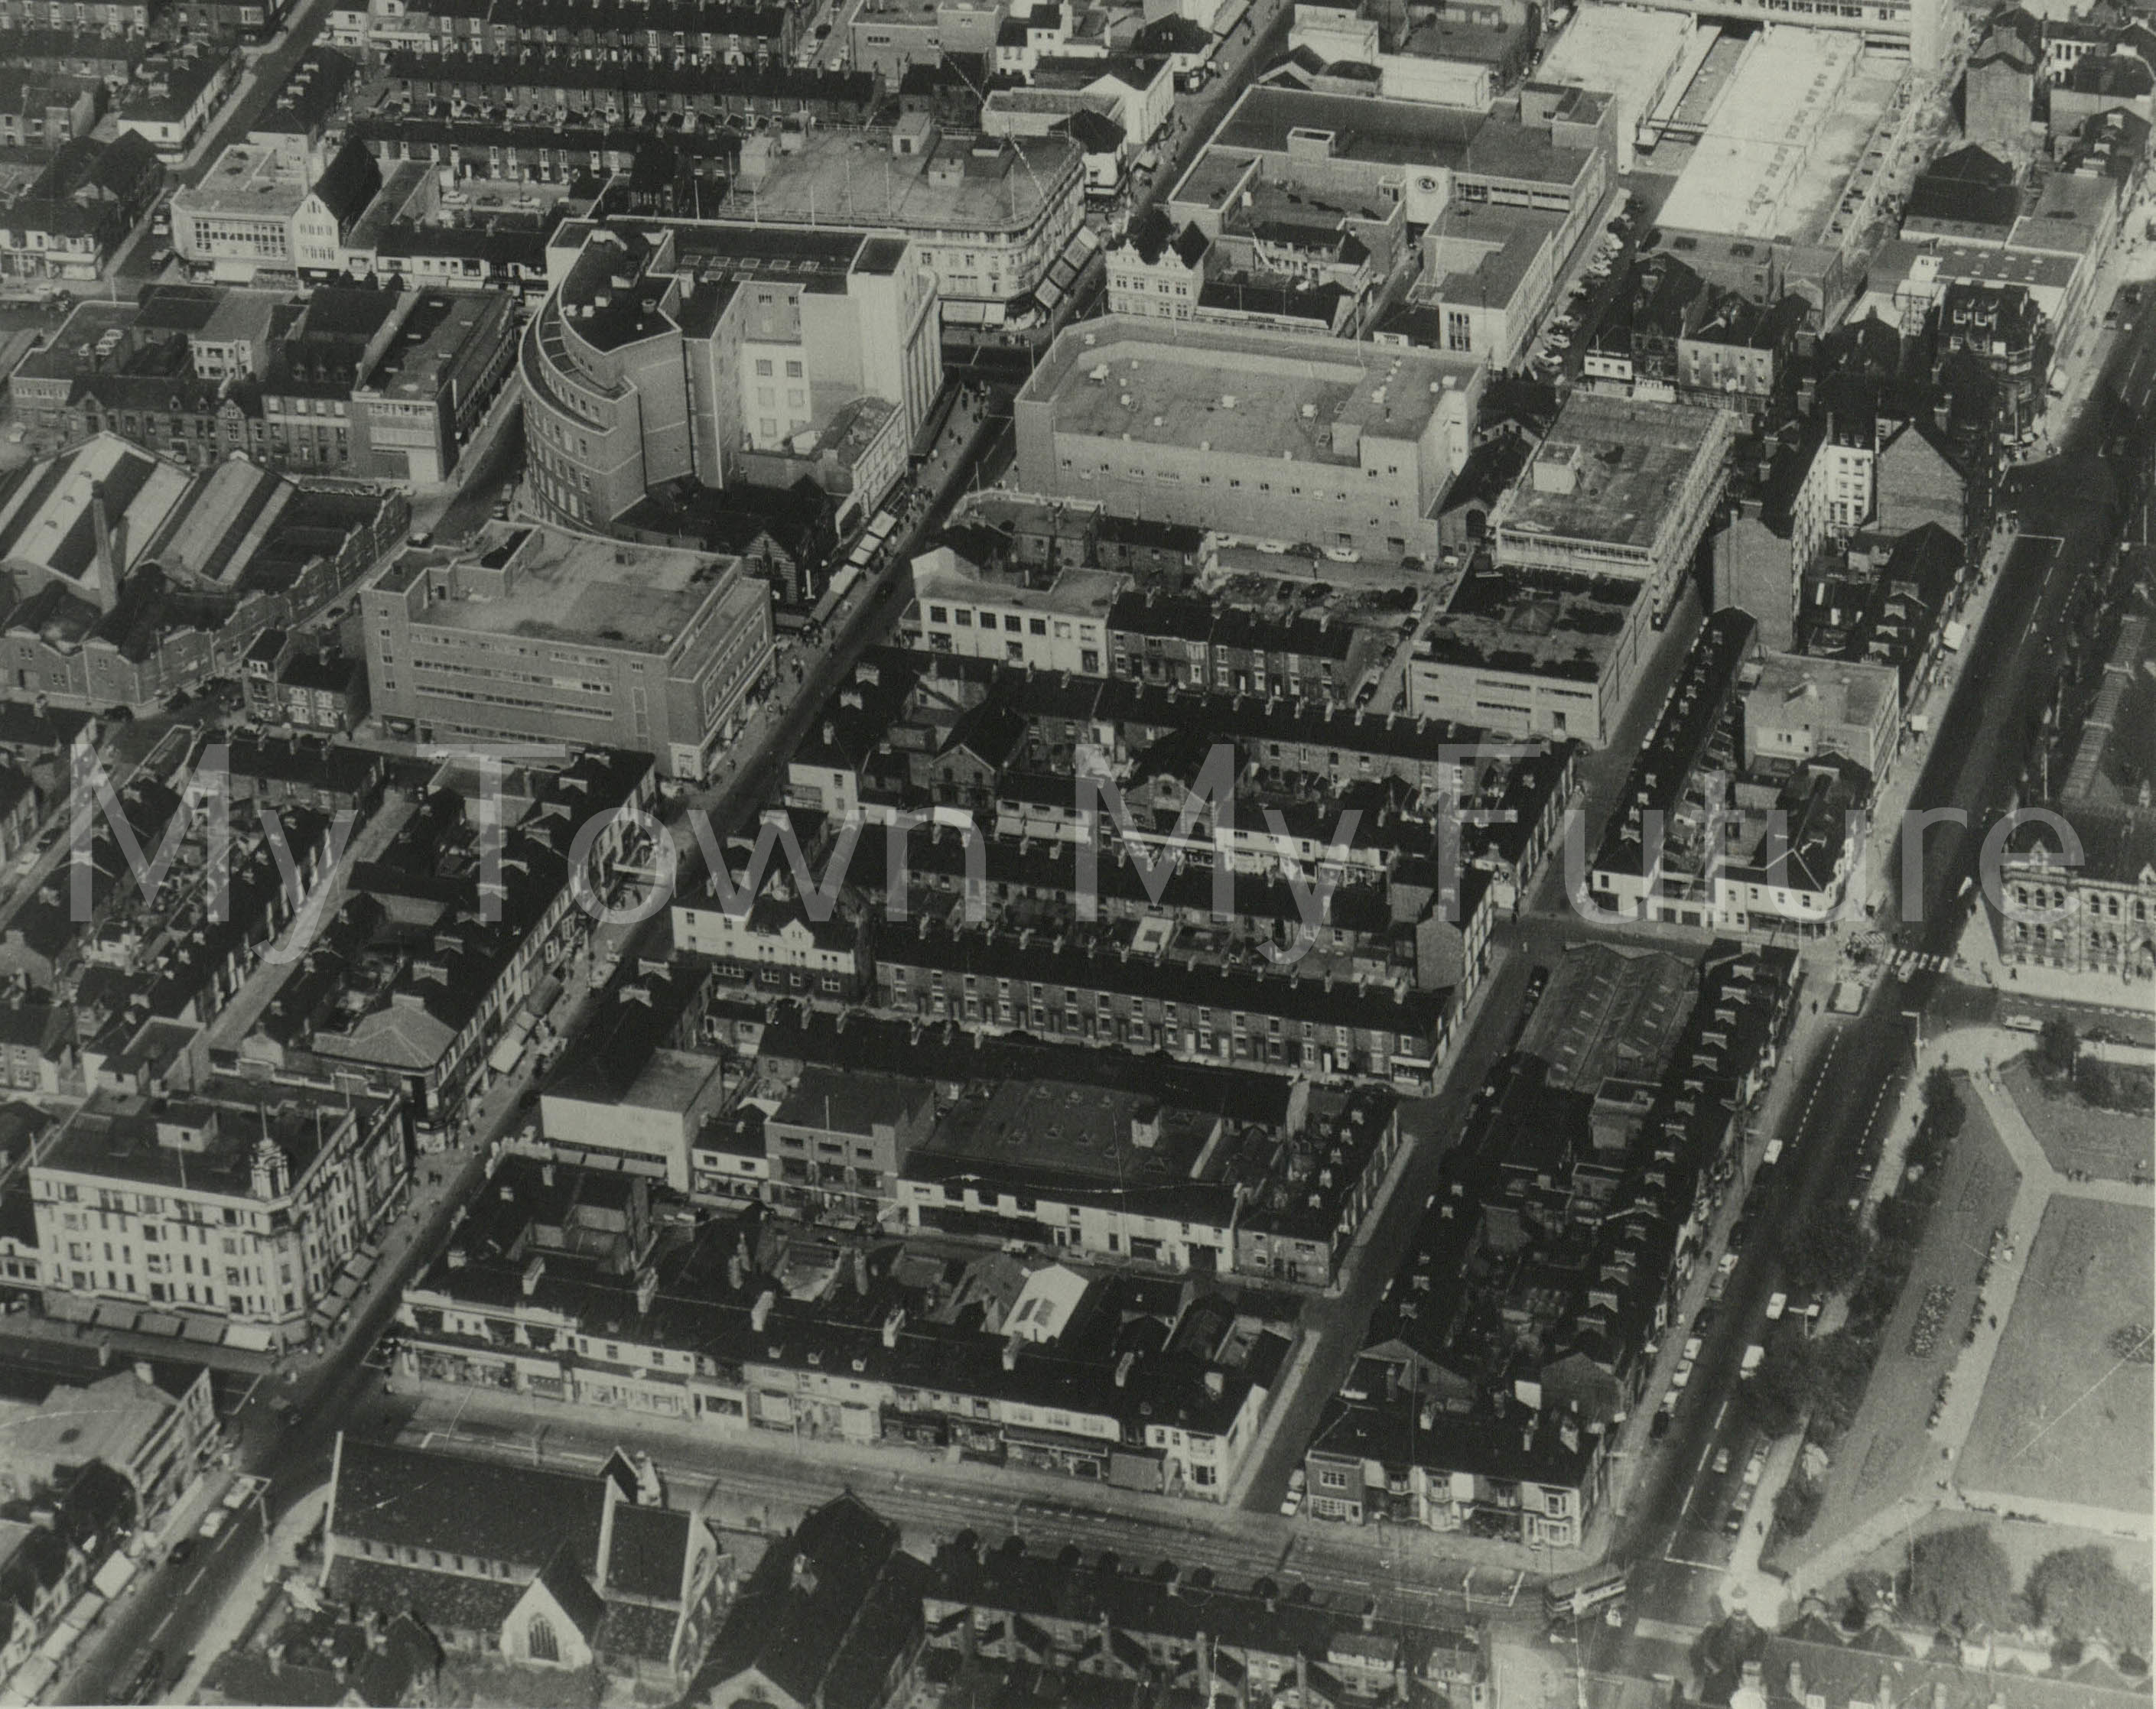 Middlesbrough Town Centre (1964).